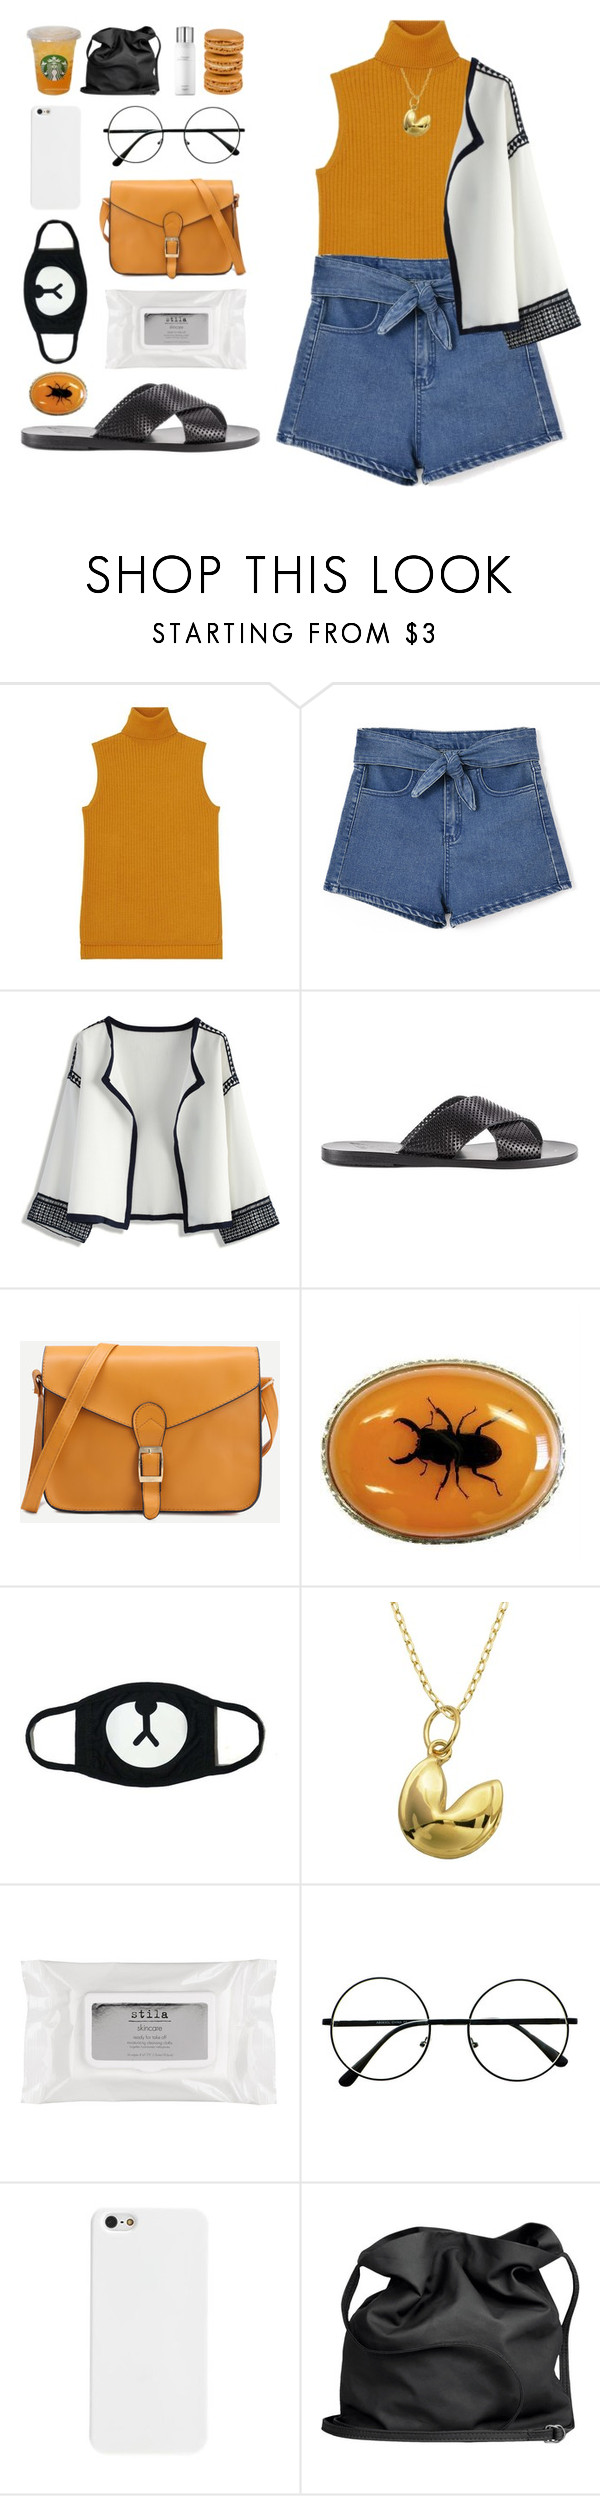 """✵ should've been the perfect storm"" by december-berry ❤ liked on Polyvore featuring Uniqlo, Chicnova Fashion, Chicwish, Ancient Greek Sandals, Lord & Taylor, Stila, Ann Demeulemeester, Hermès, bedroom and black"